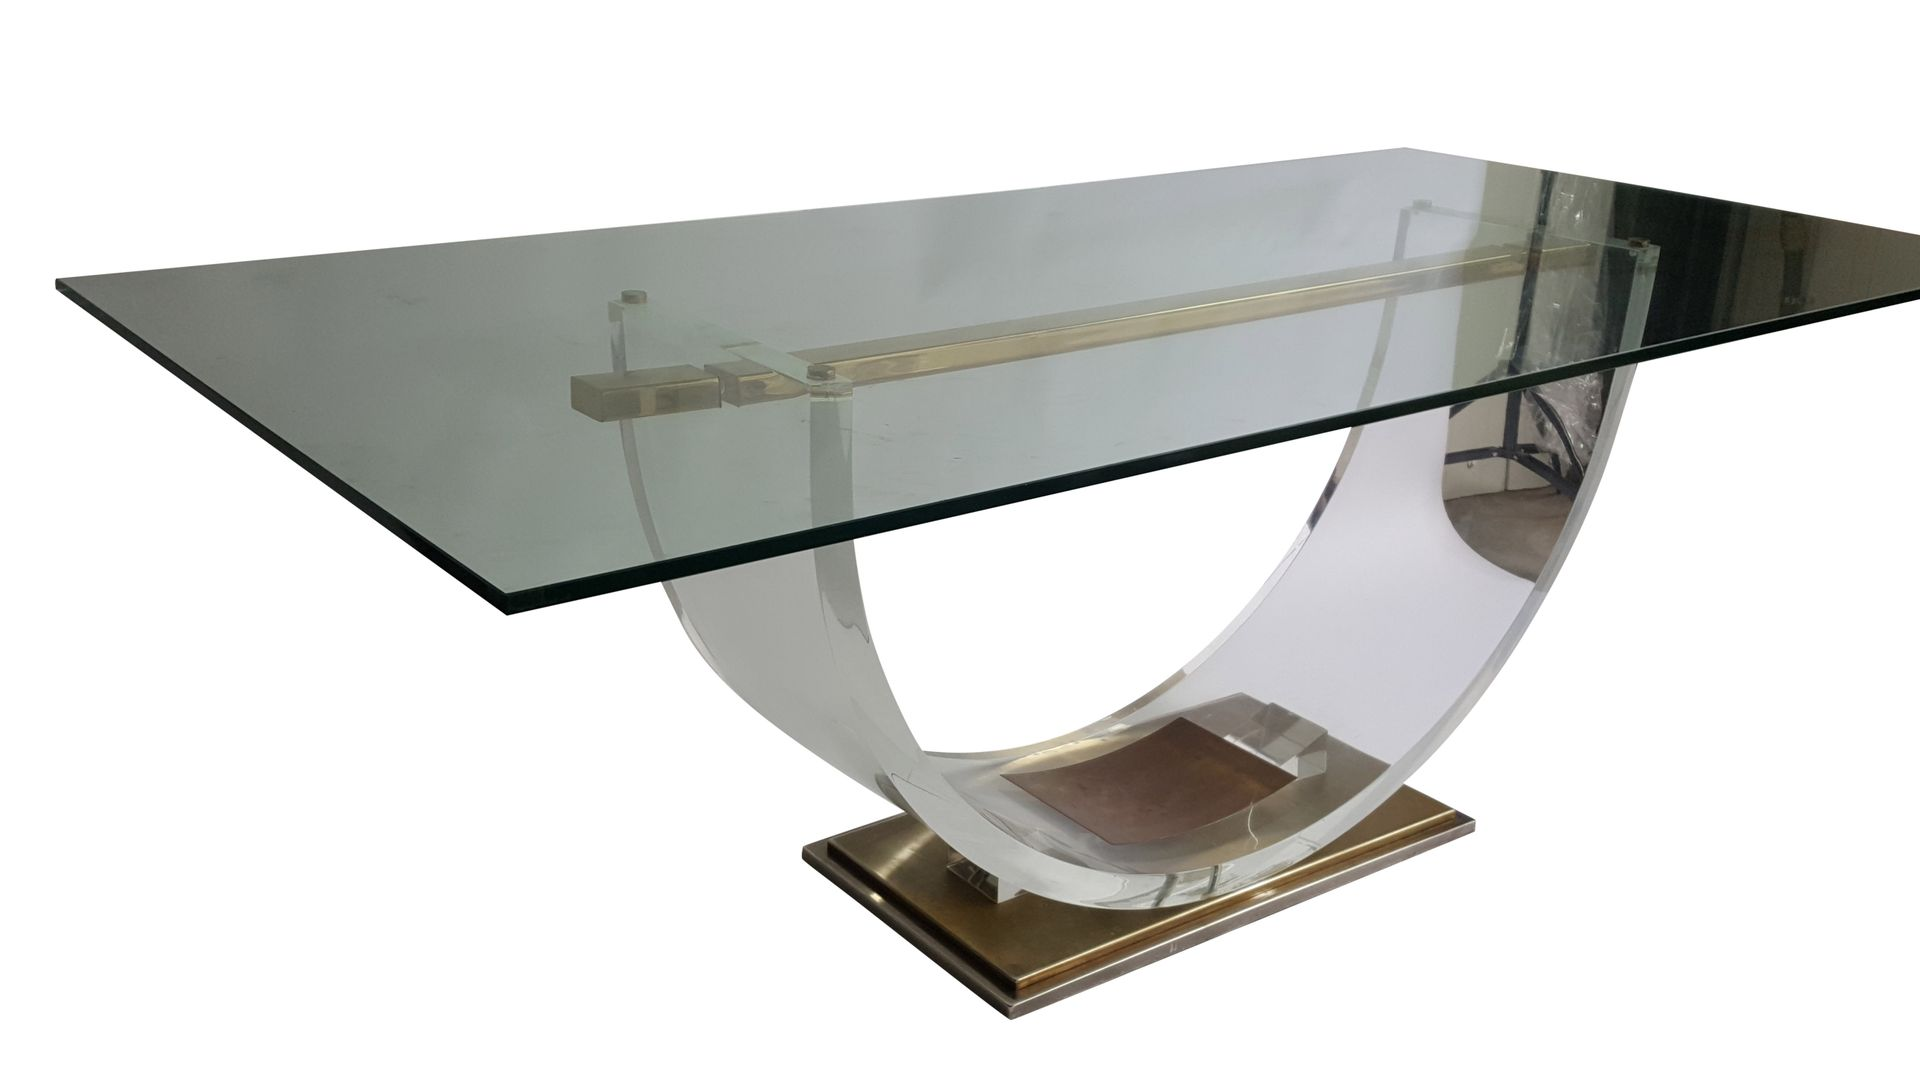 vintage lucite dining table by hollis jones for belgochrom 1970s